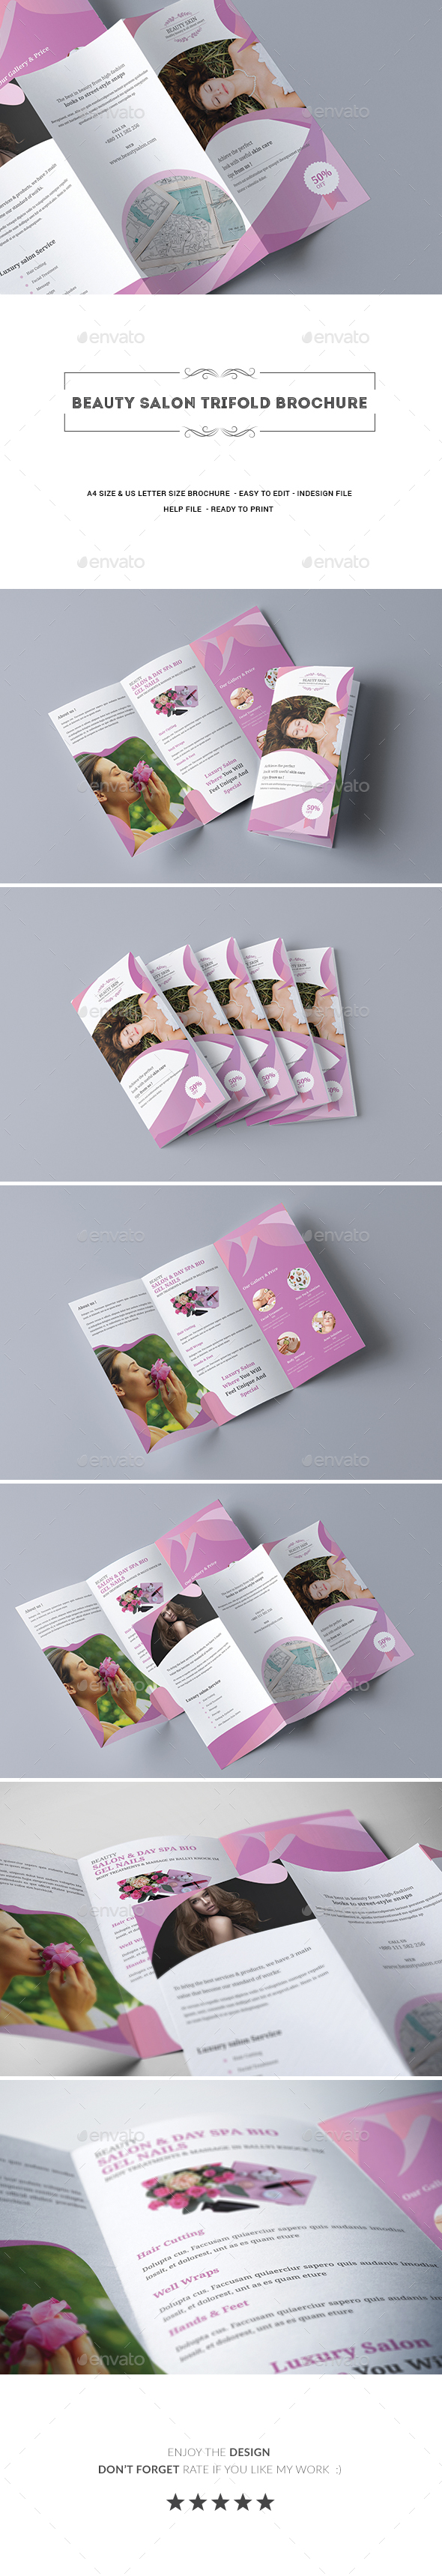 Beauty Salon Trifold Brochure - Informational Brochures